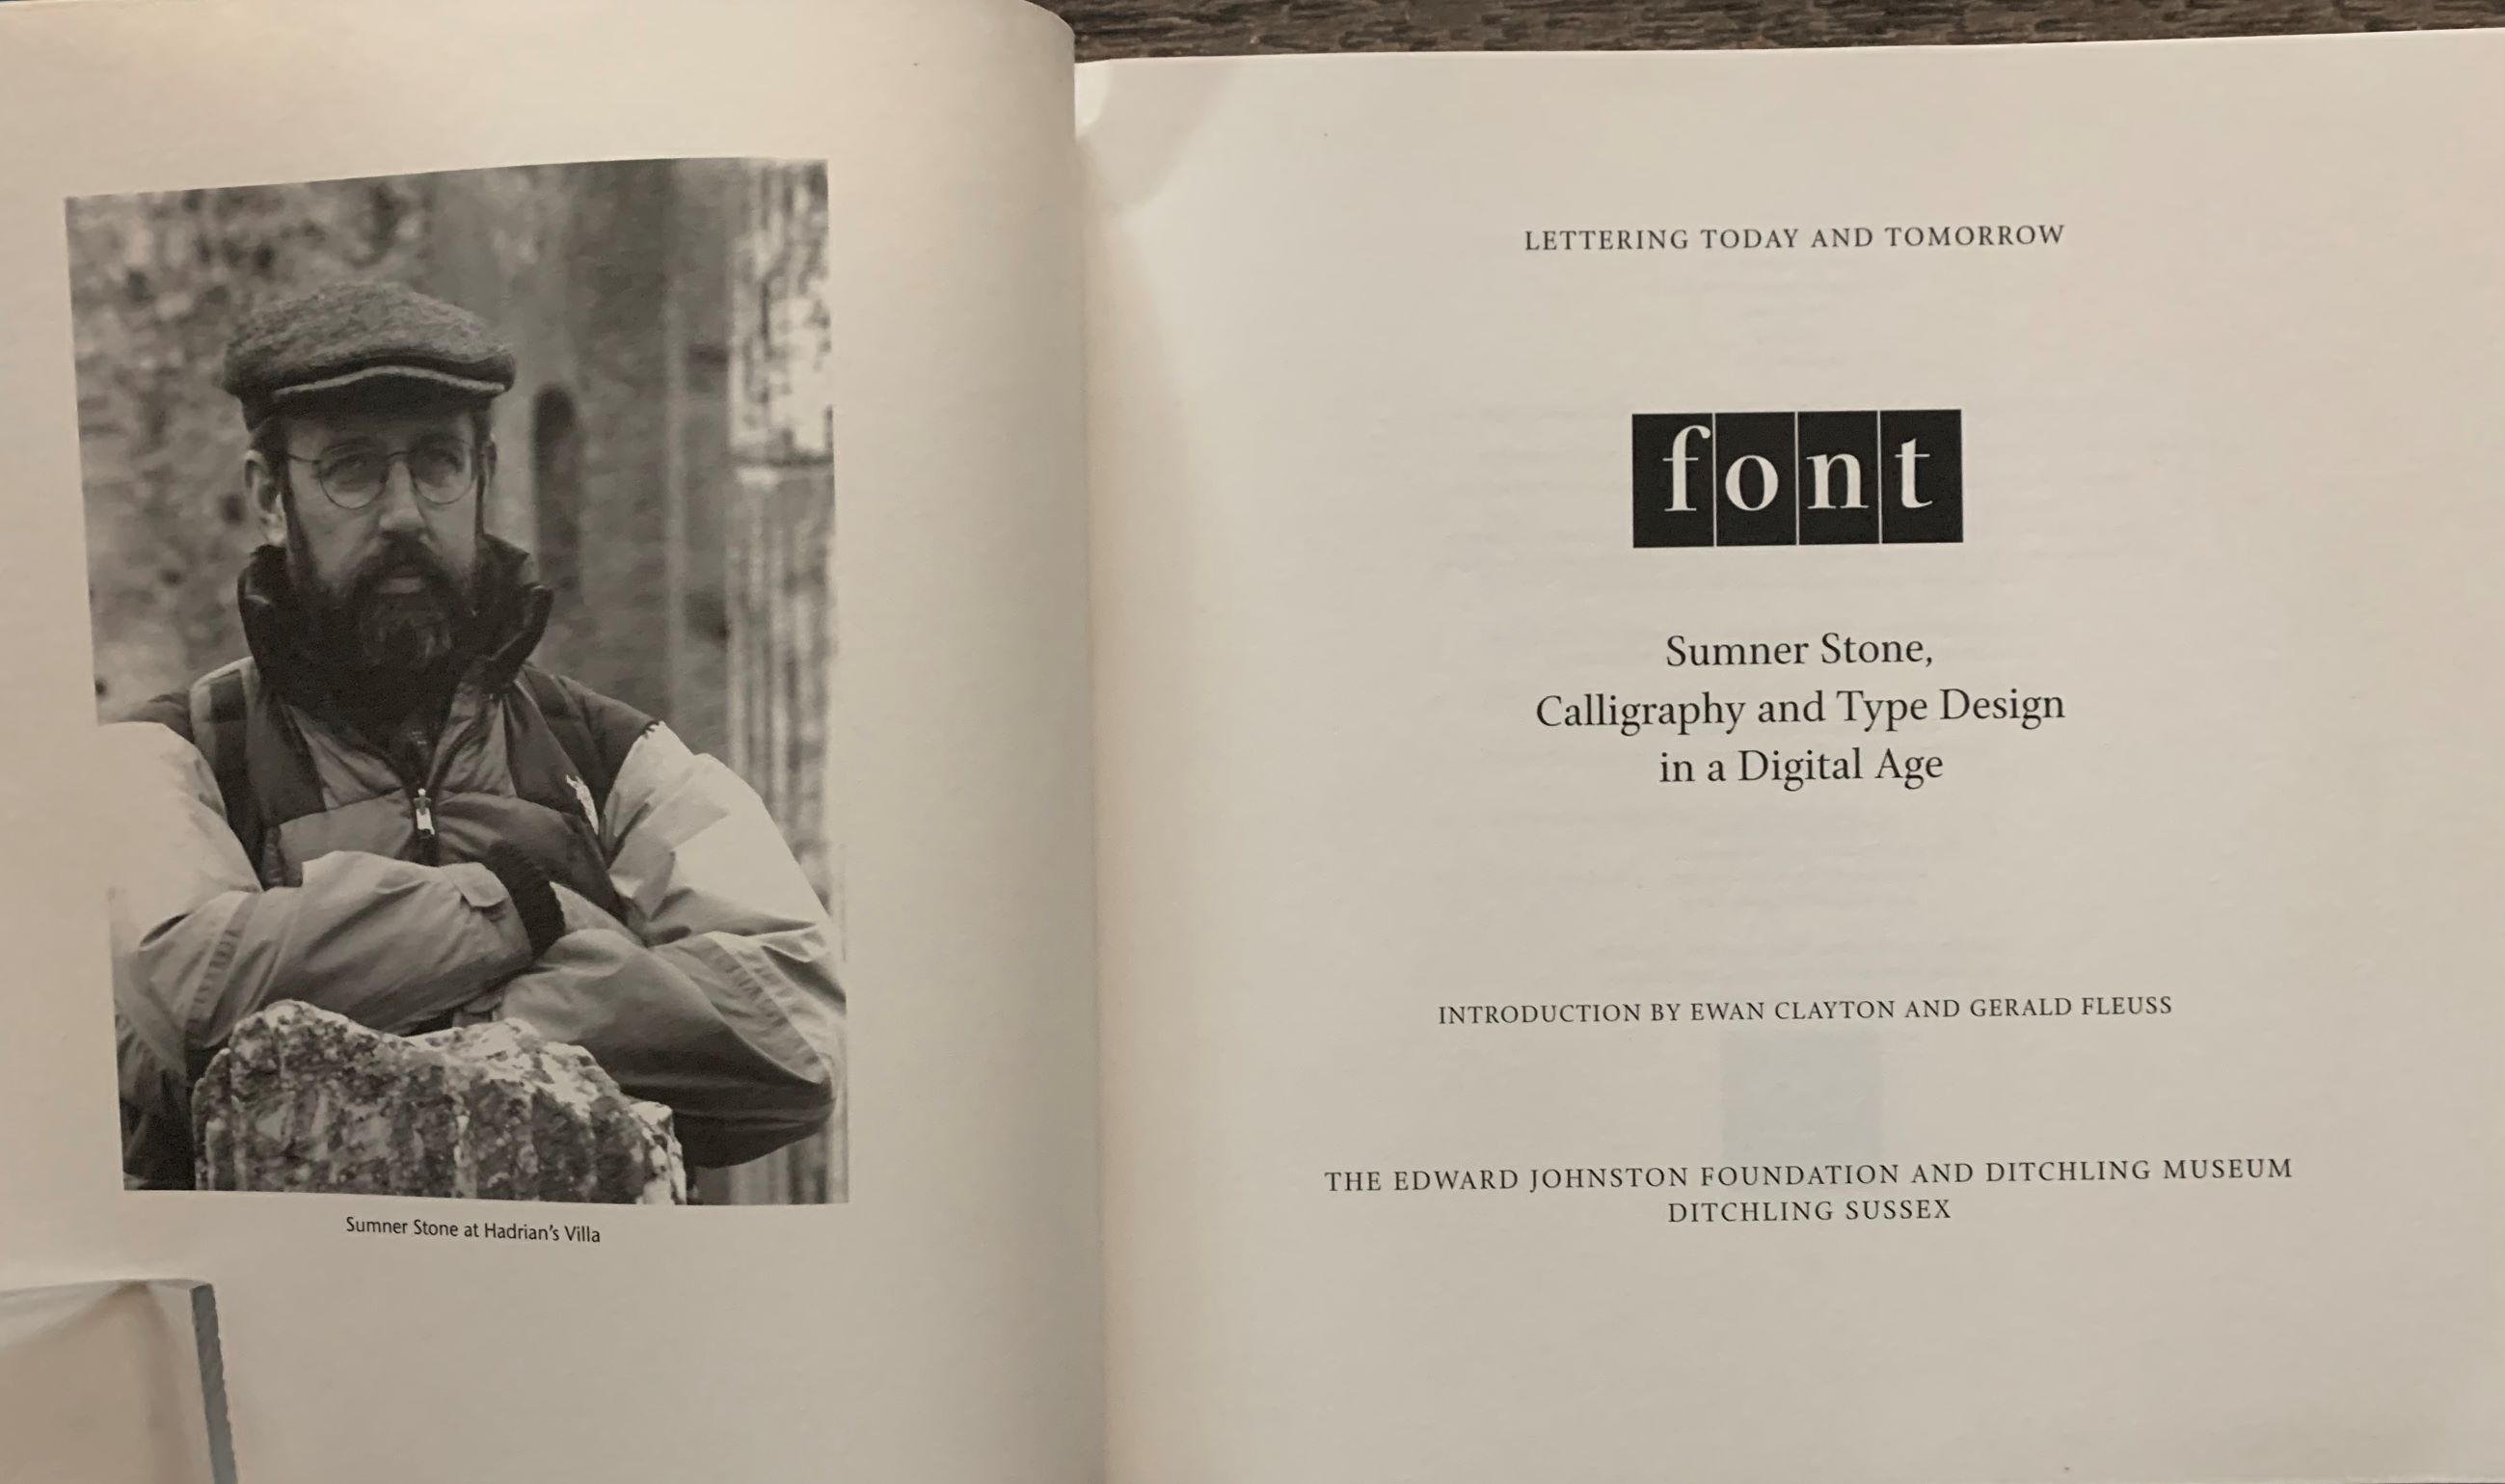 Image for Font. Sumner Stone, Calligraphy and Type Design in a Digital Age.